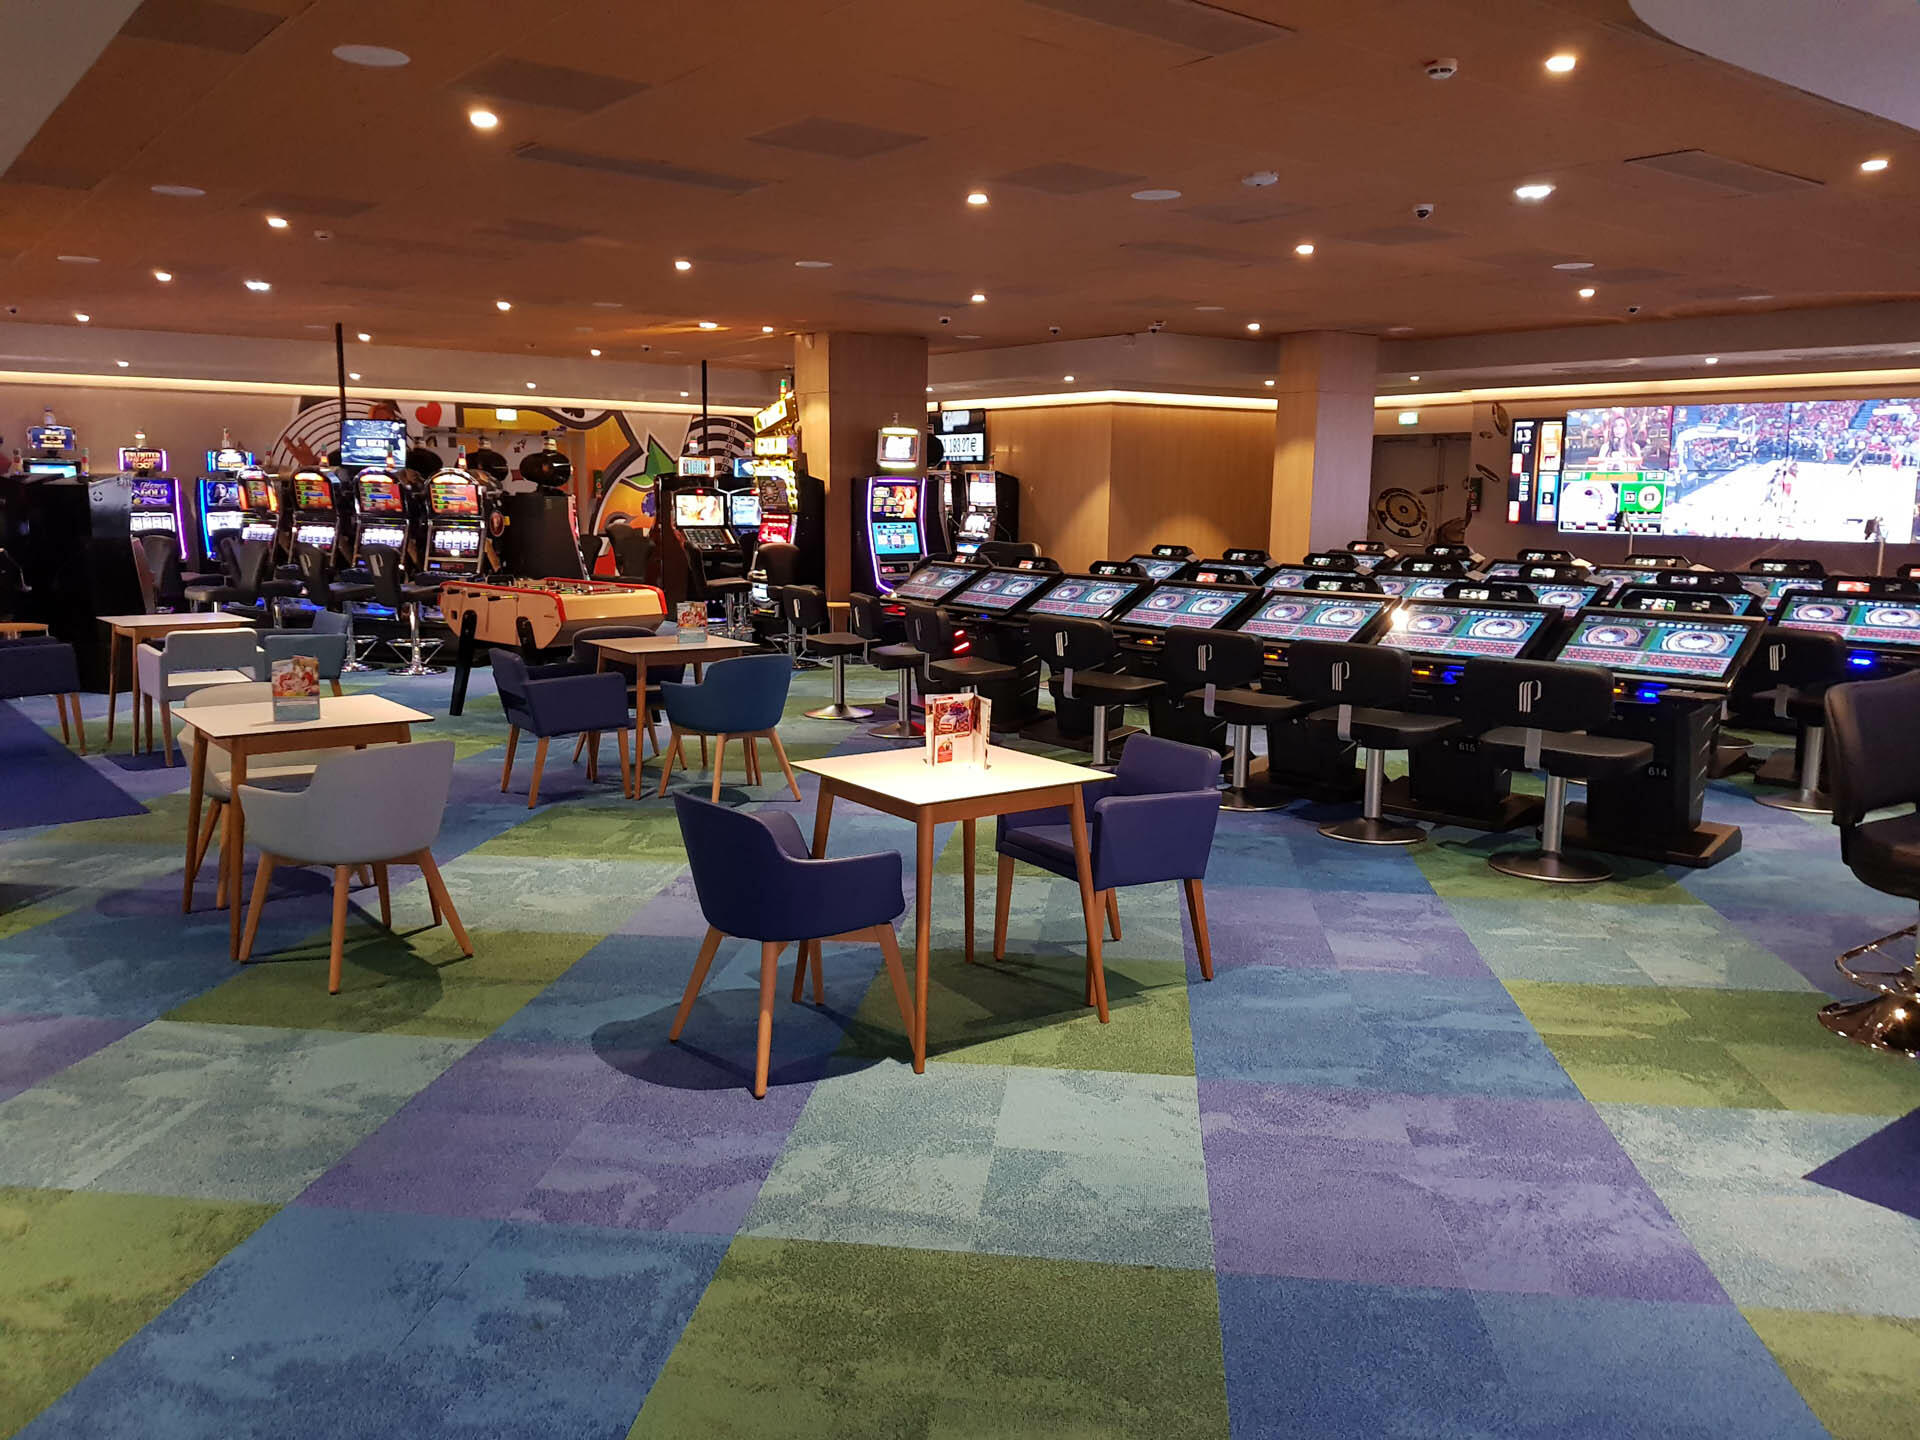 Casino at Grand Hôtel du Casino in Dieppe, France